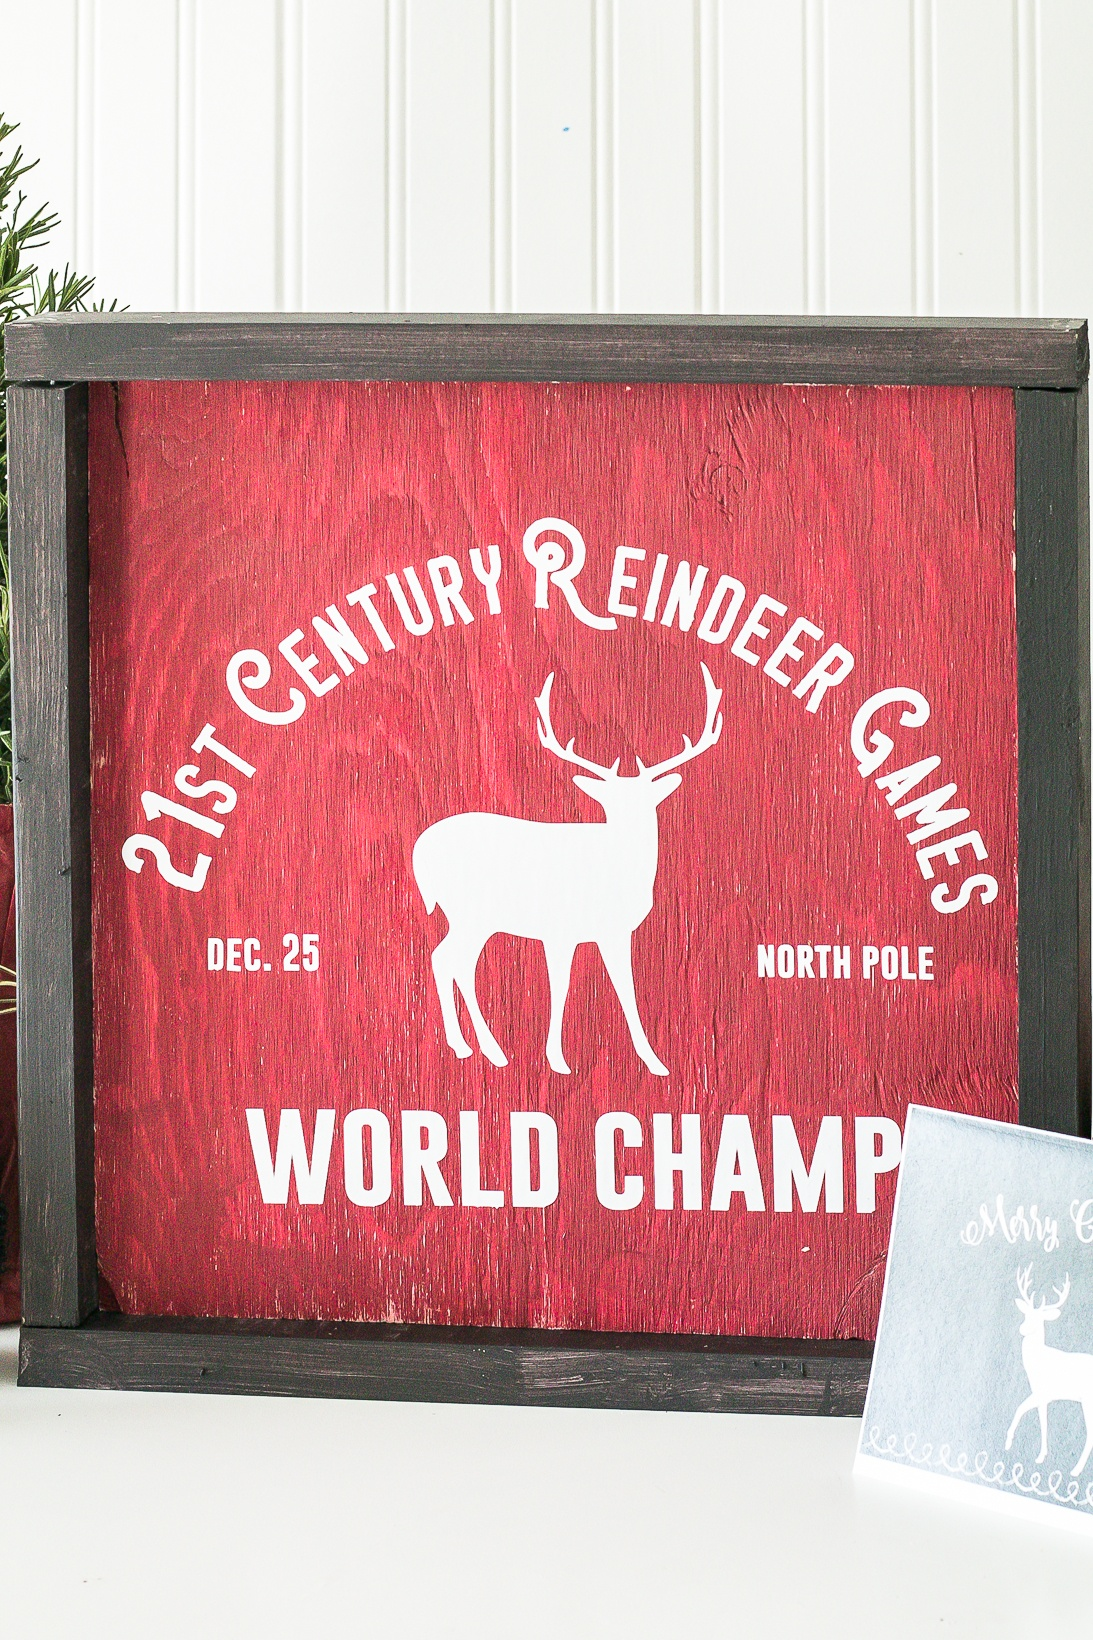 Reindeer Games old fashioned sign